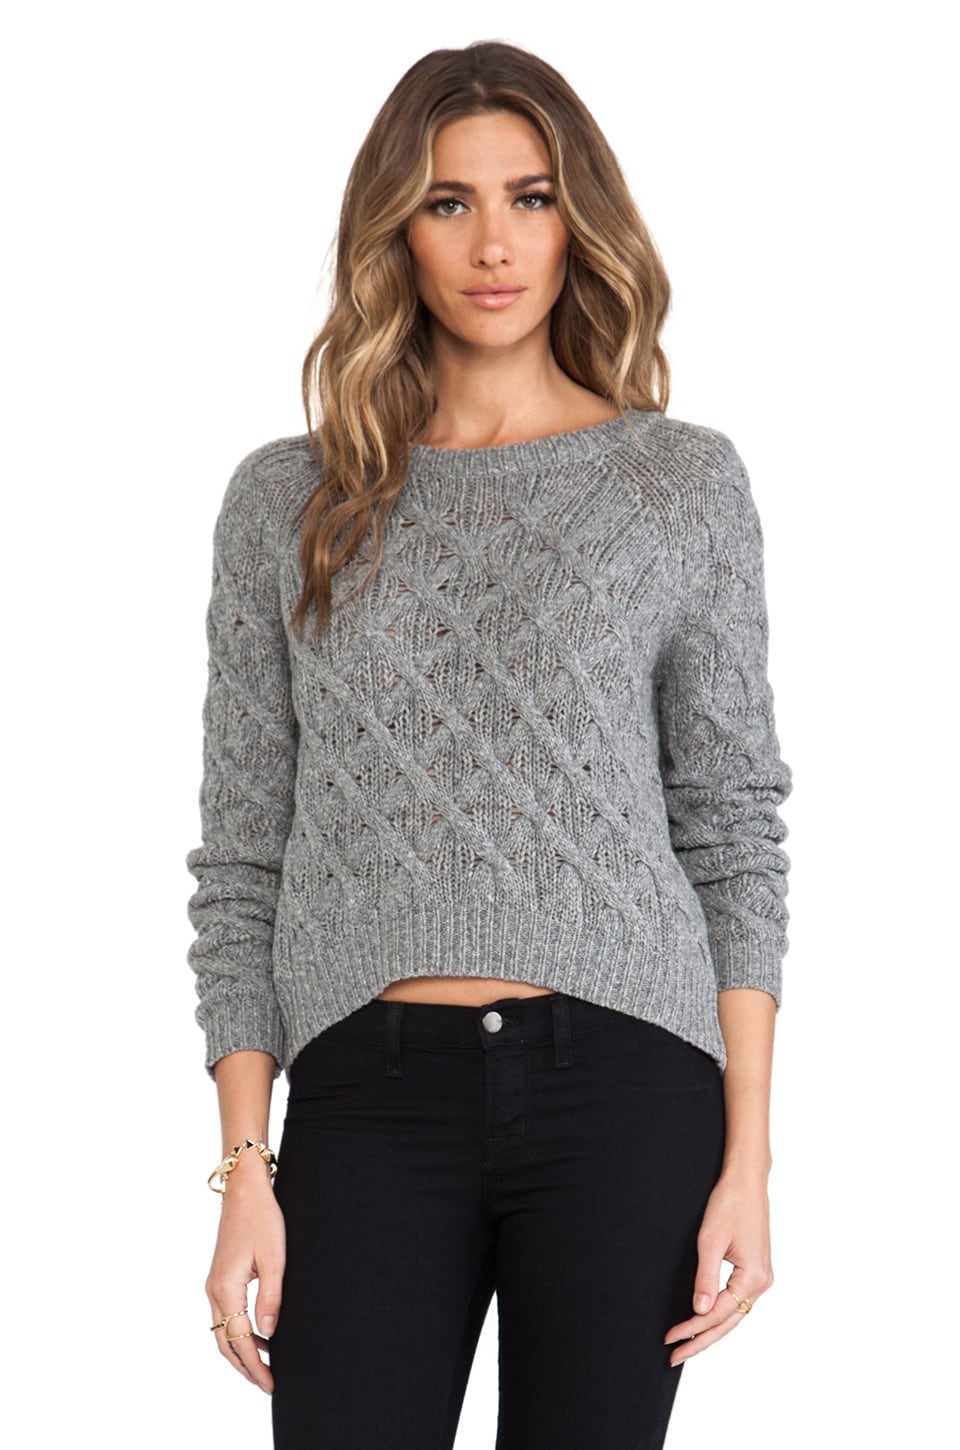 Inhabit Cashmere Chainette Sweater in Mid-Grey